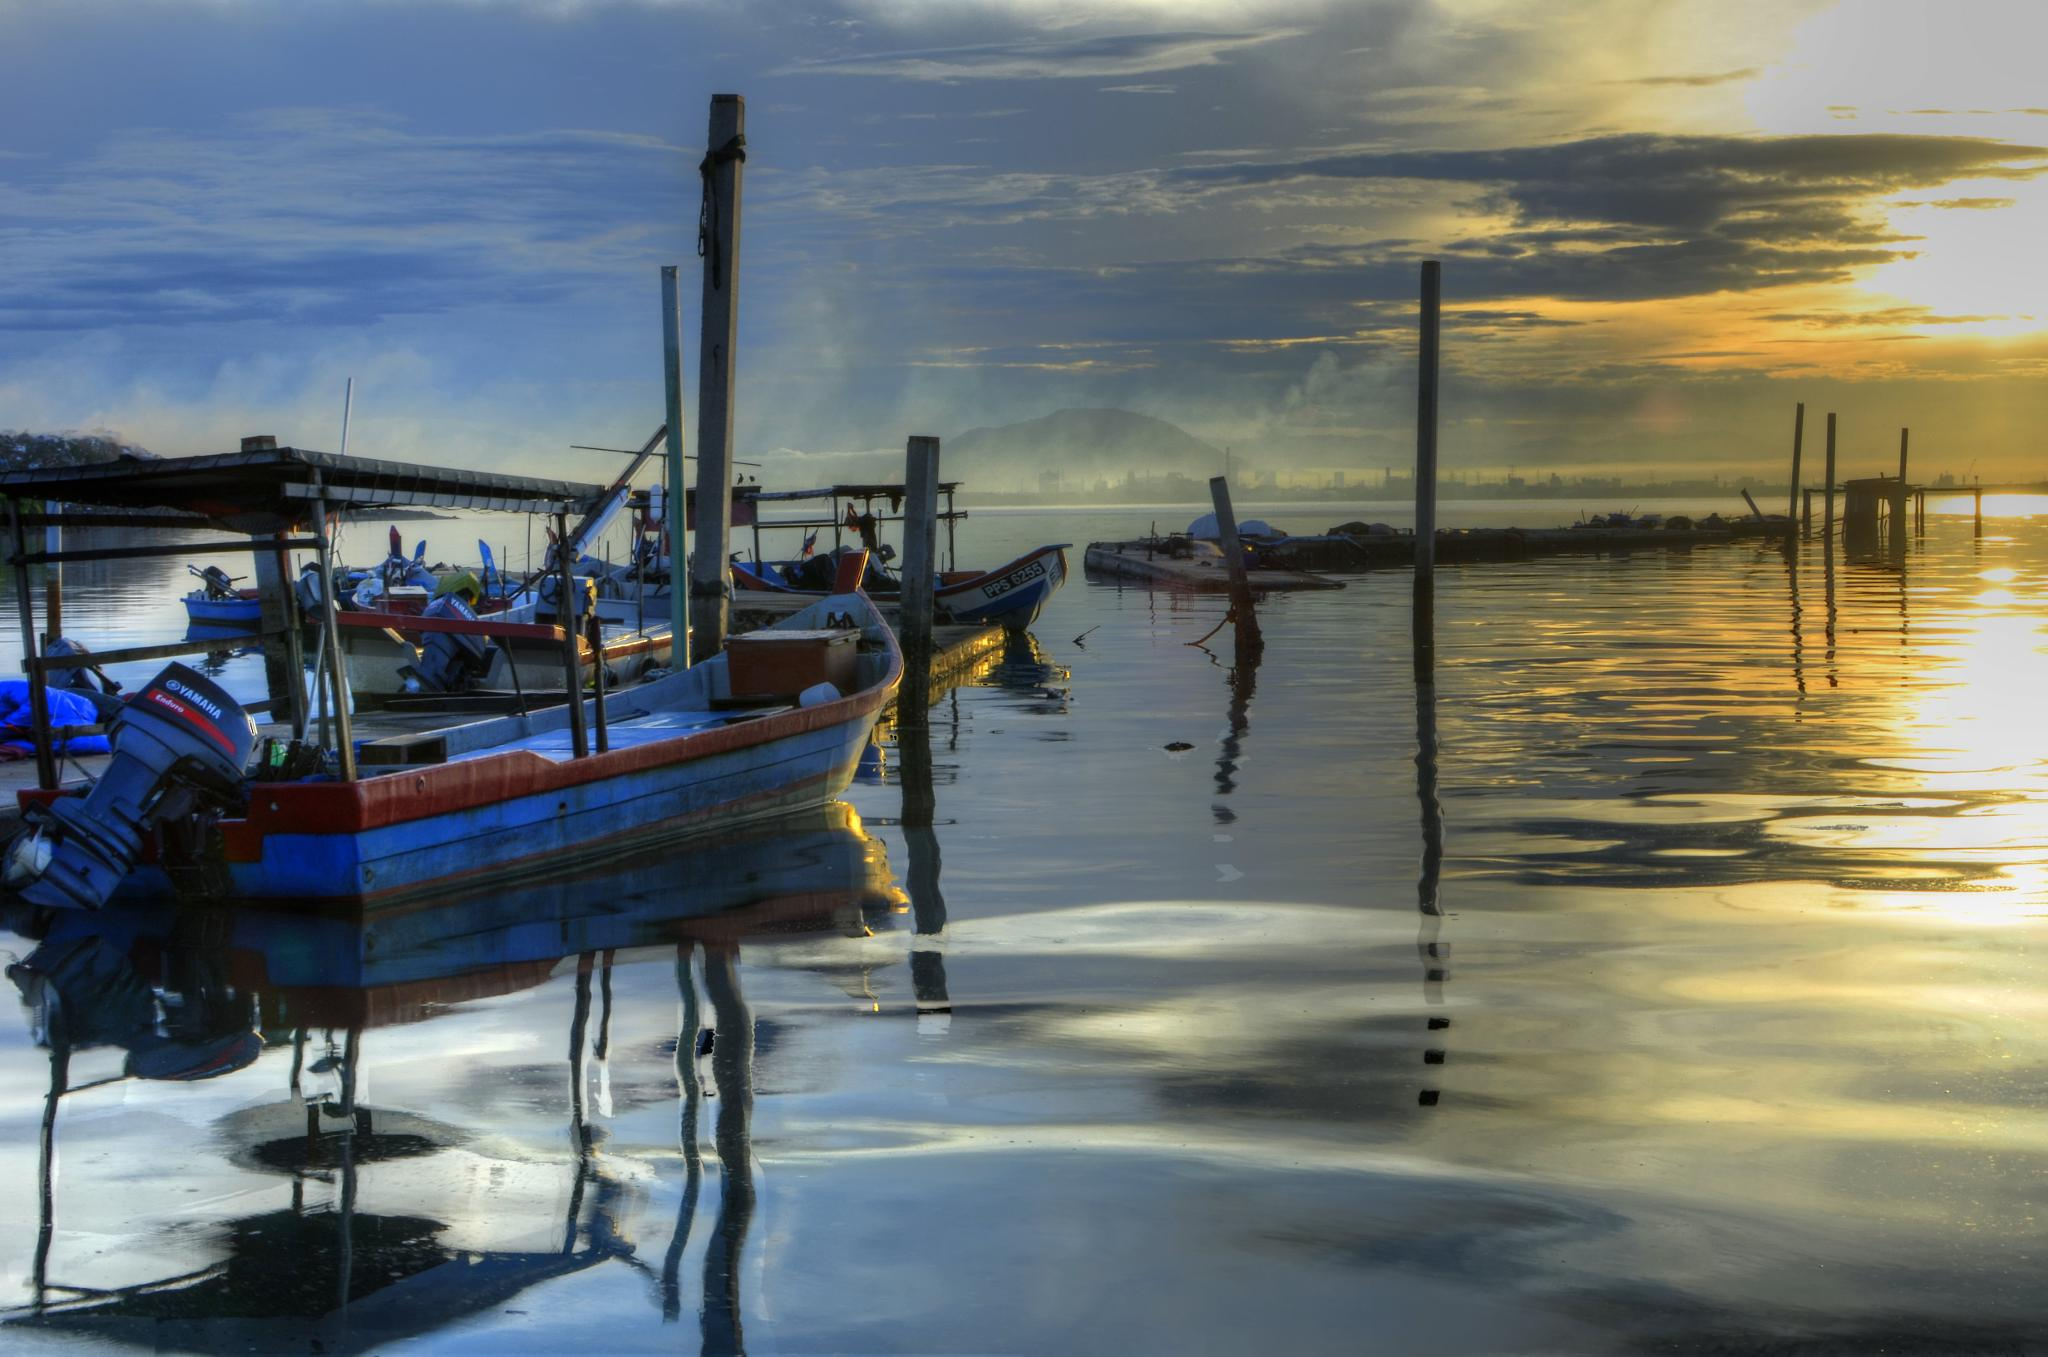 Morning light at Dove Jetty by davidngsh